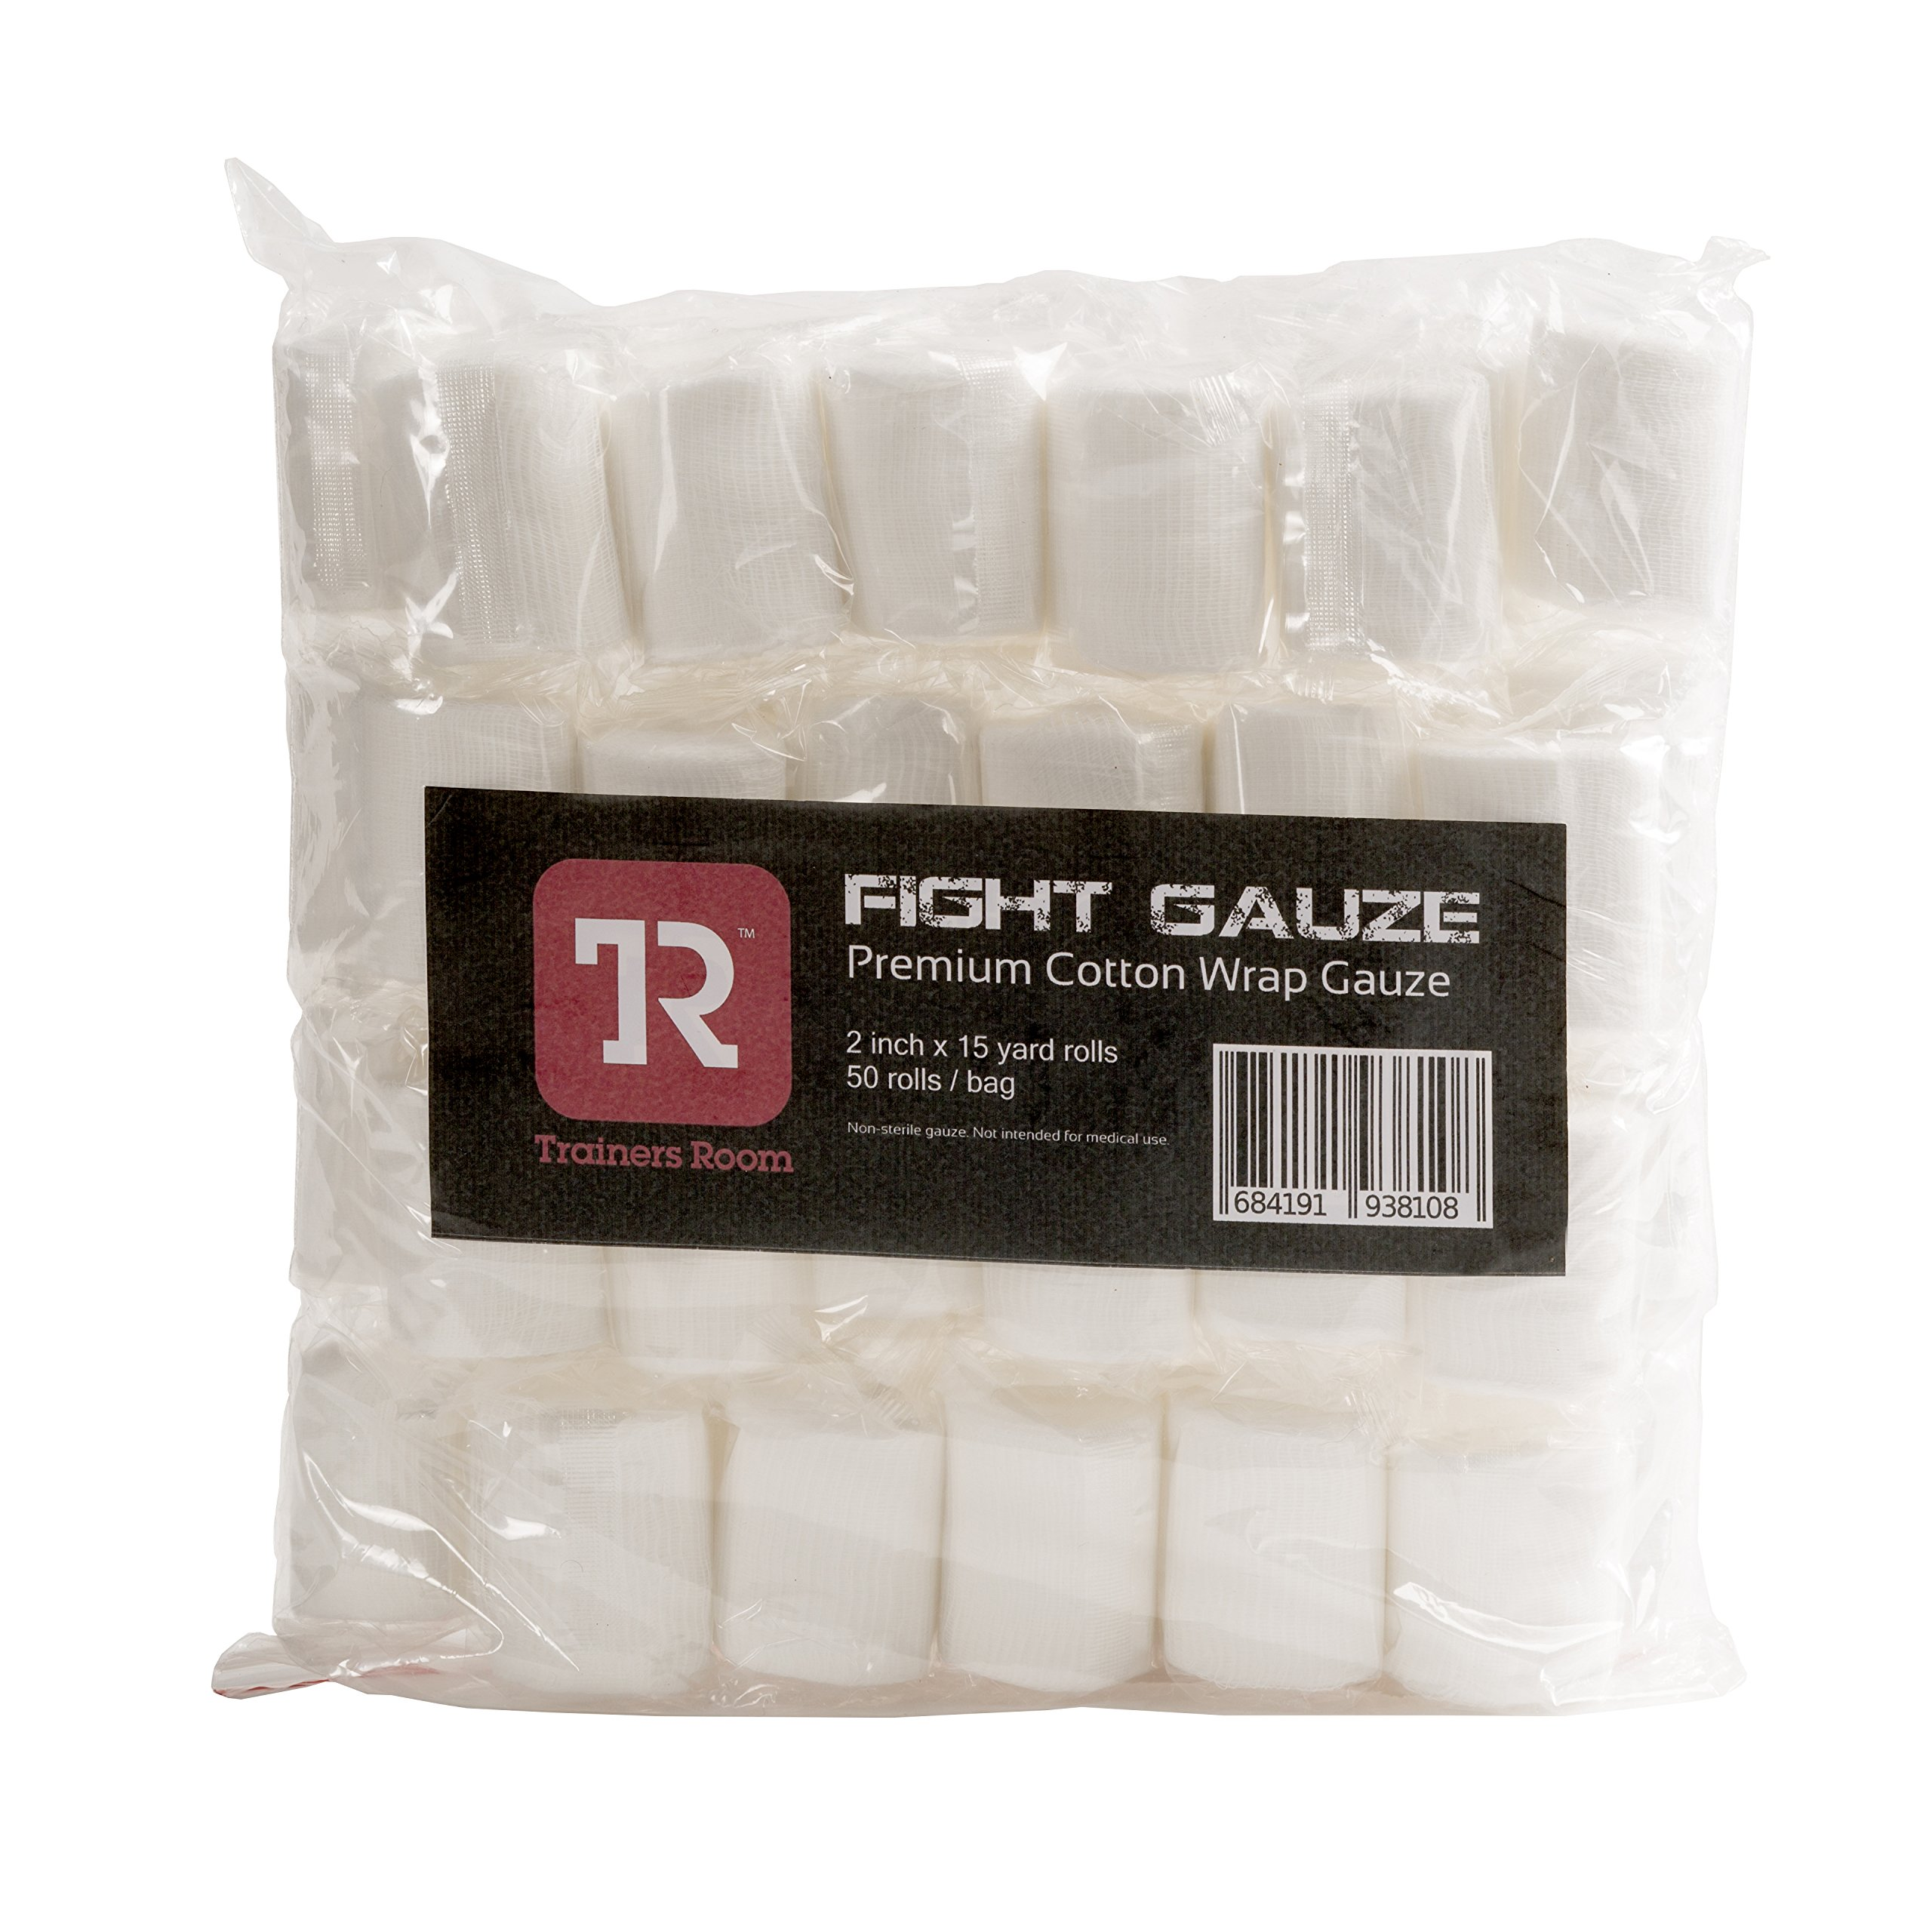 TR Fight Gauze 2 inch 50 Roll/bag